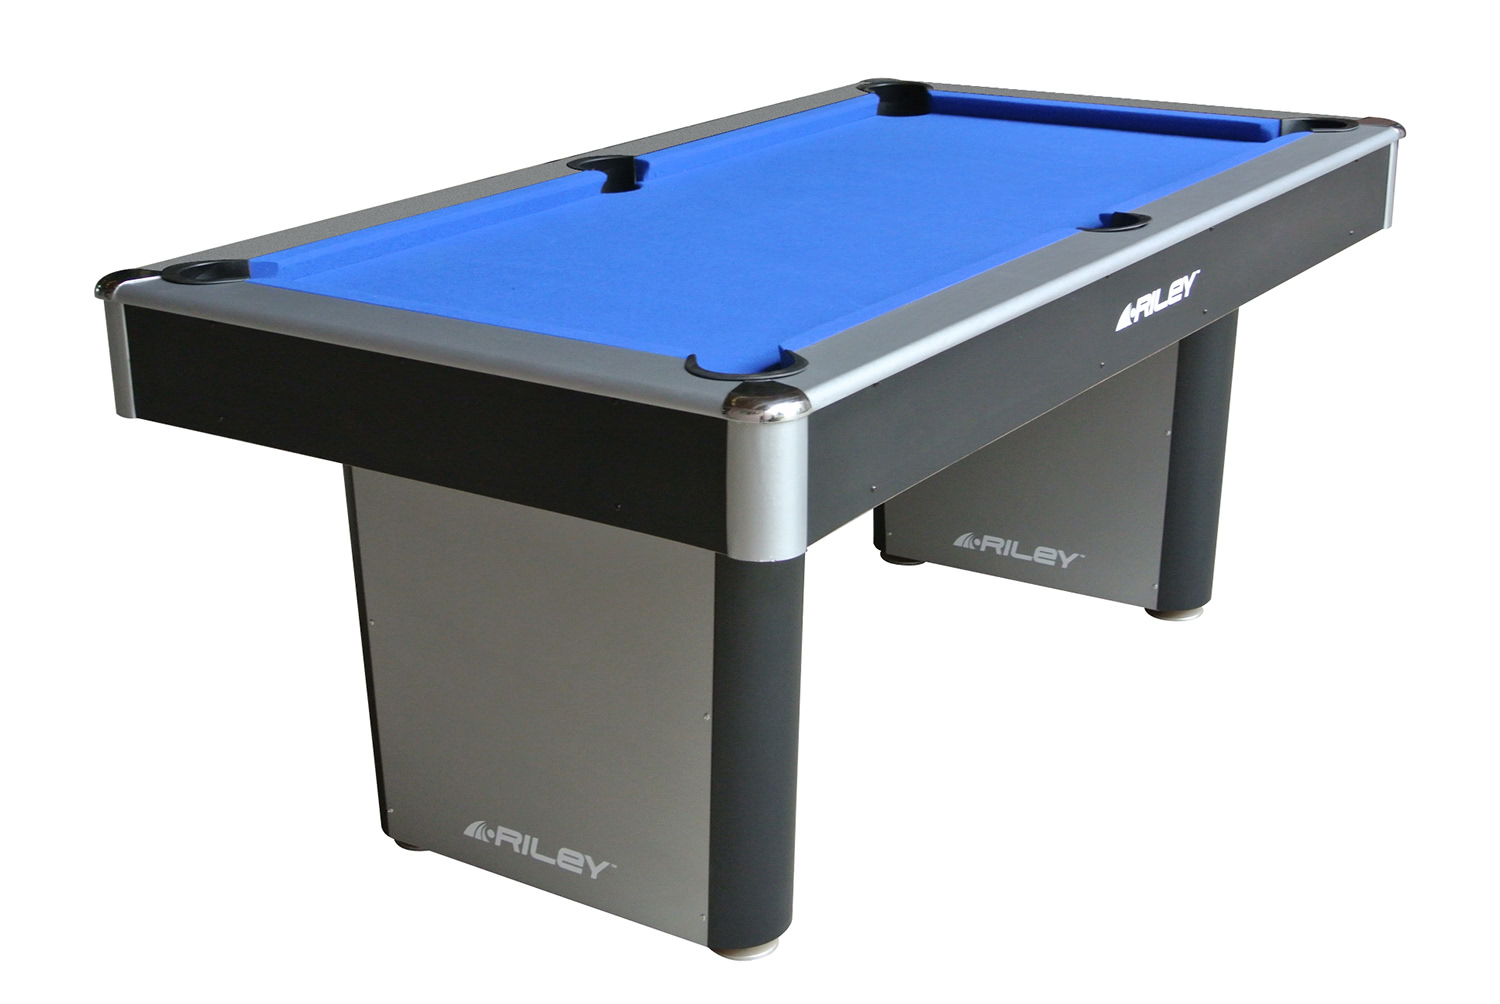 Riley Pool Table Jl 2c Liberty Games